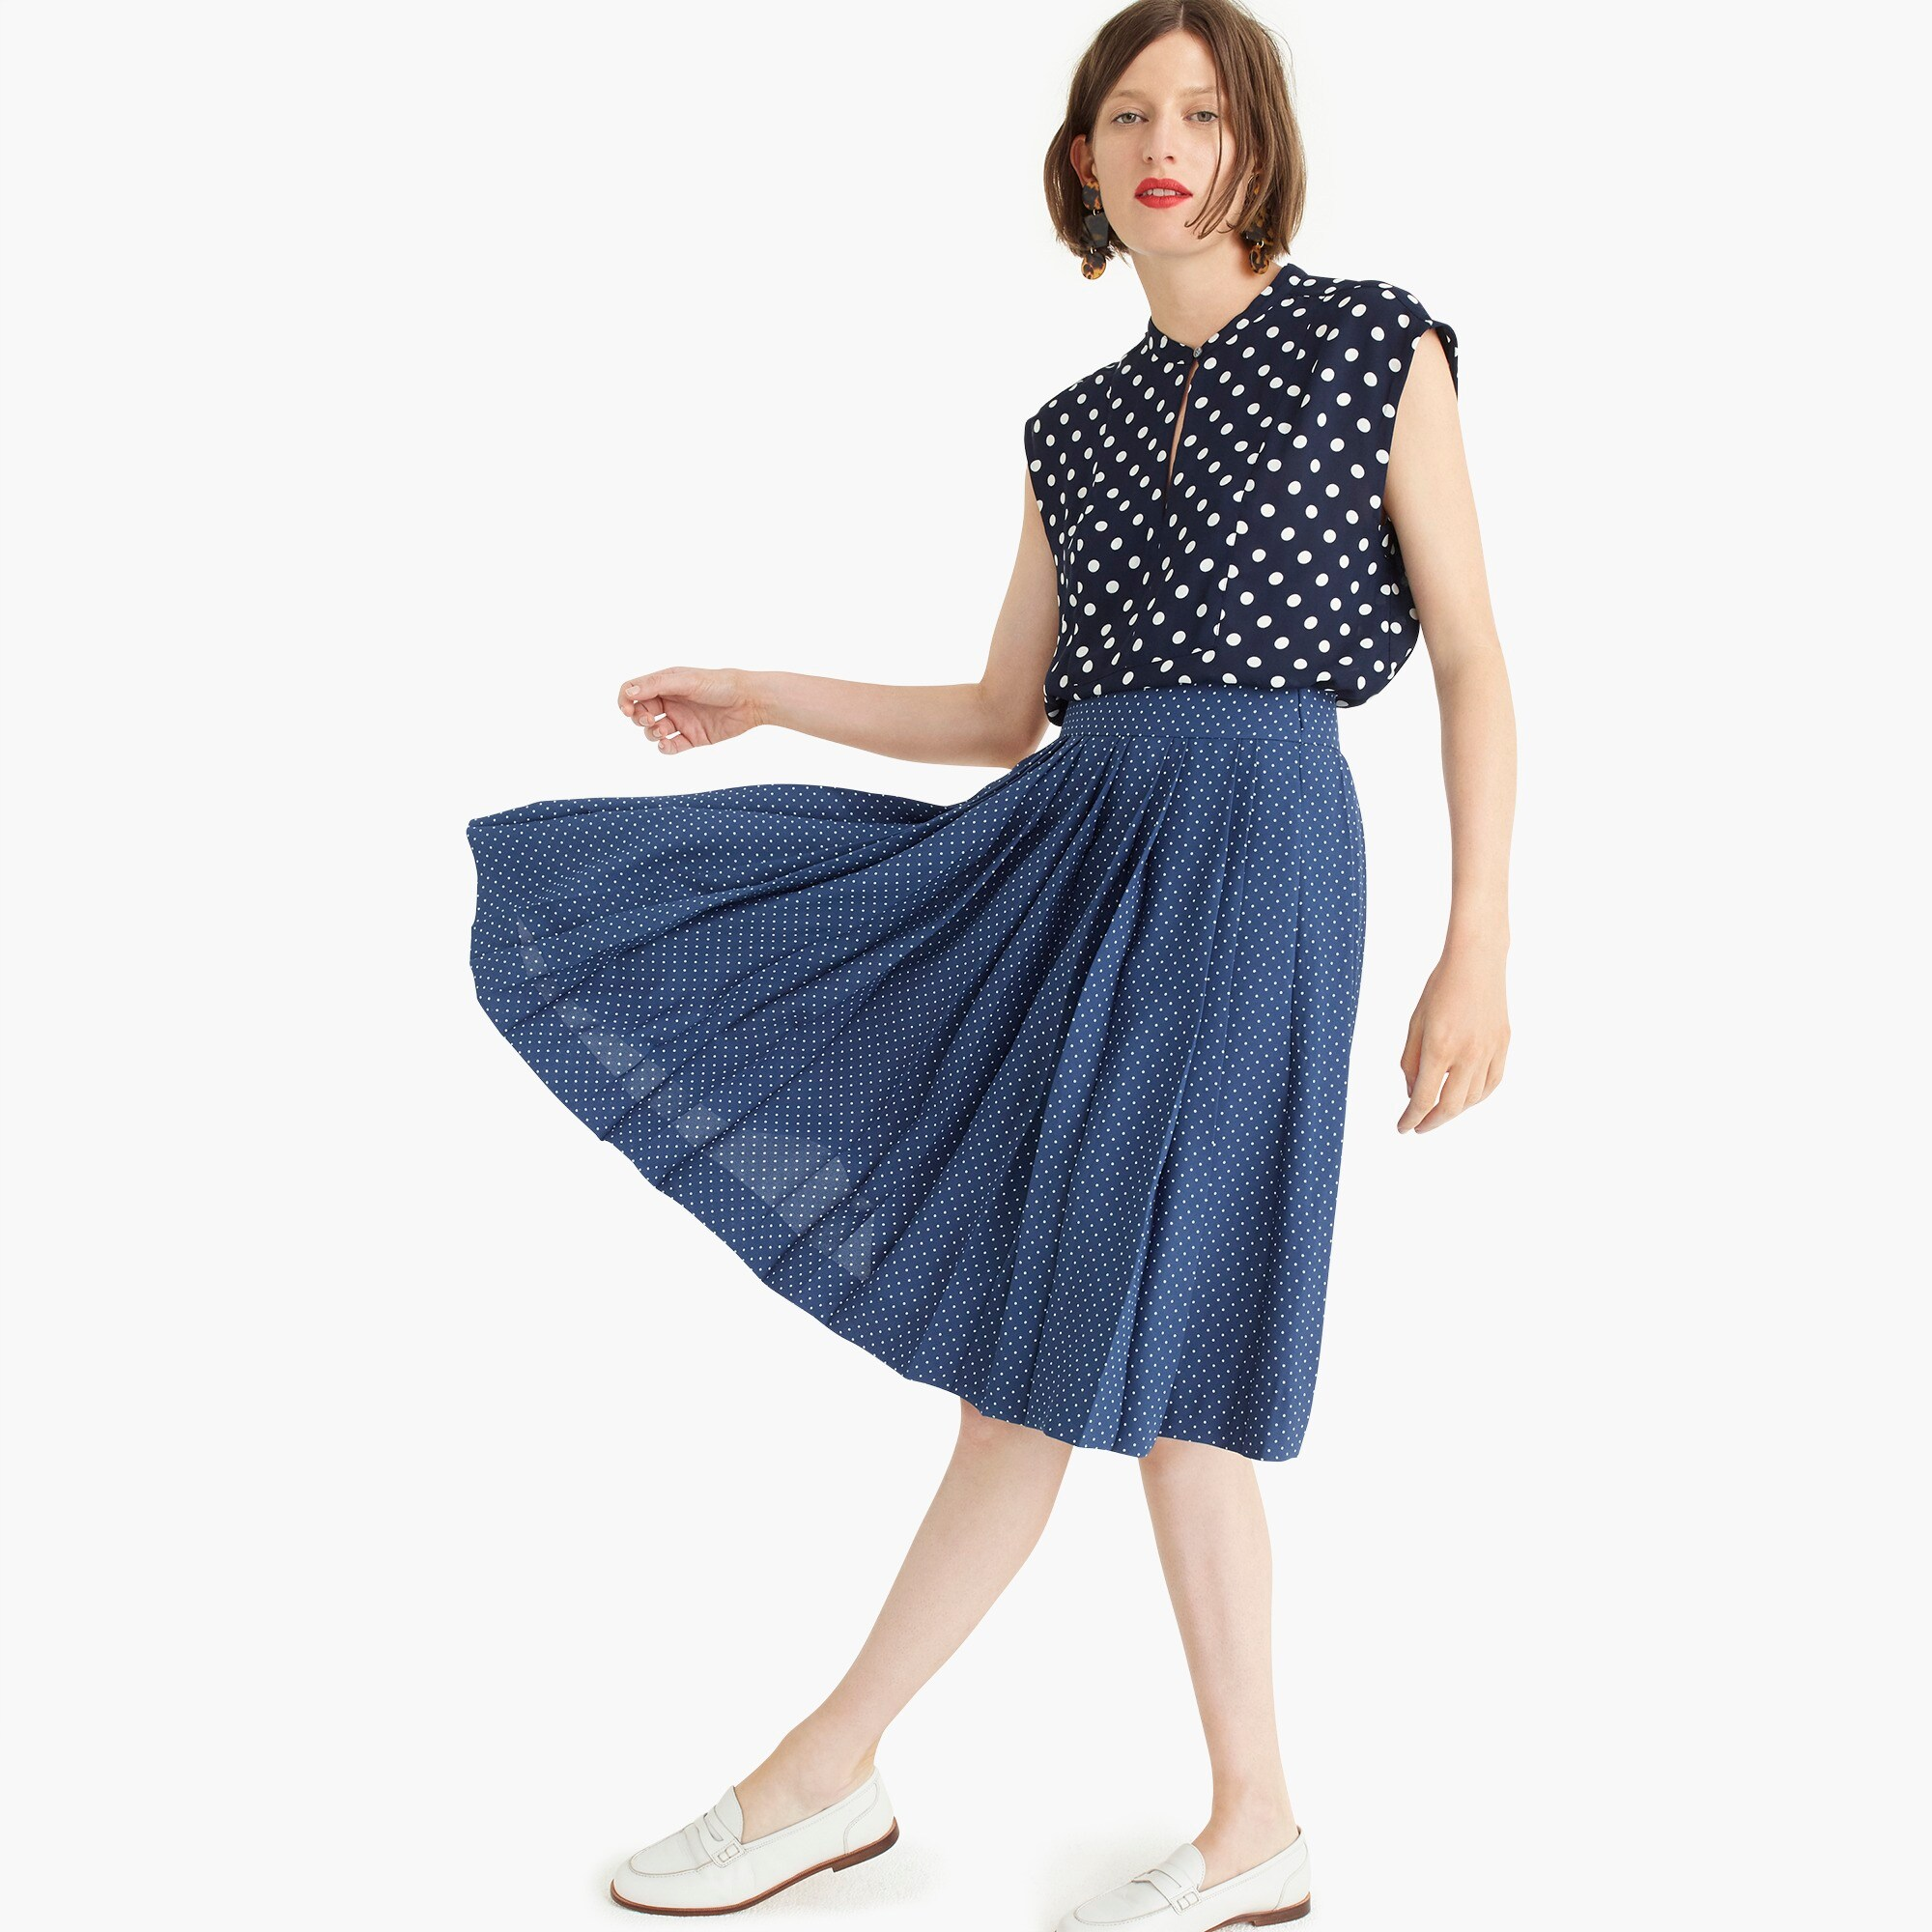 Image 1 for Double-pleated midi skirt in polka dot